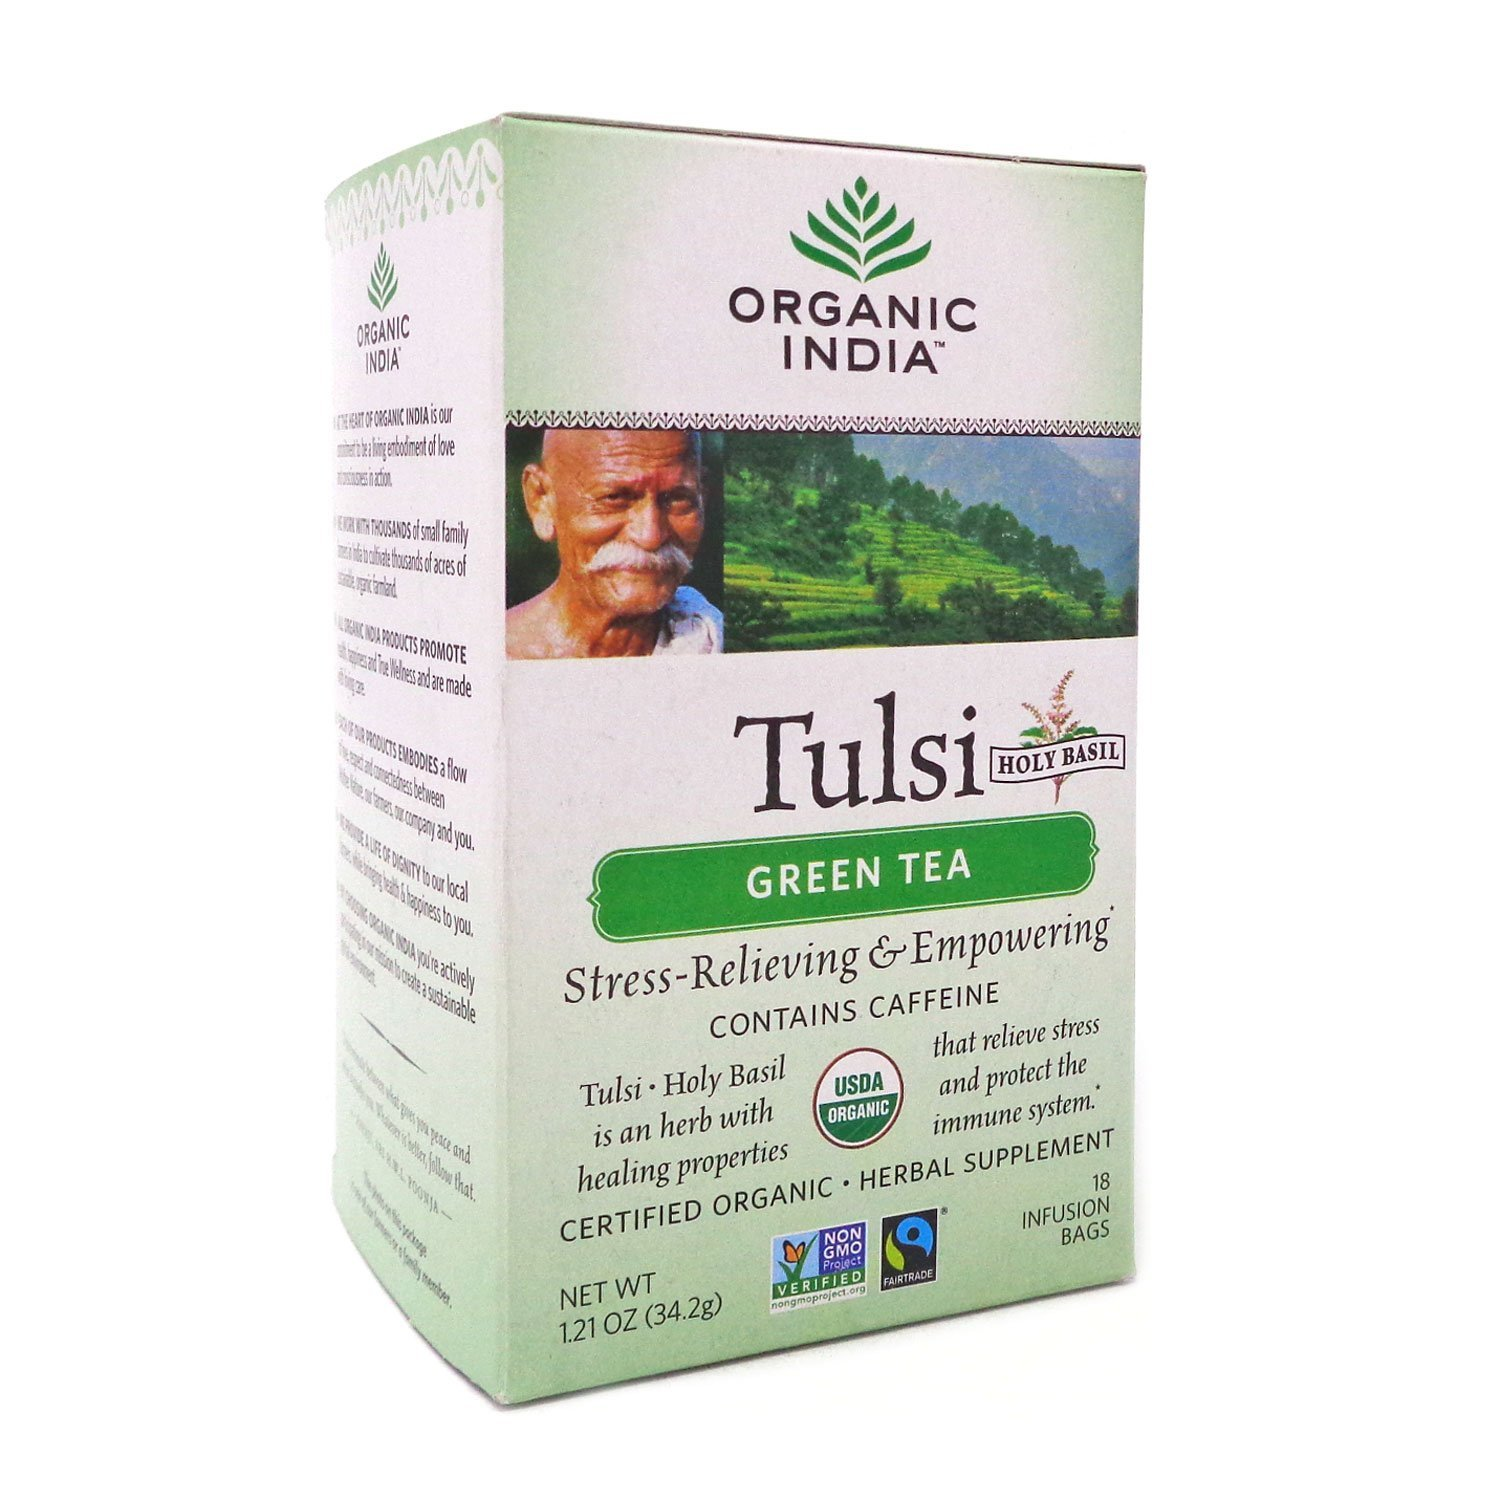 Organic India Tulsi Green Tea Classic, 18-Count Teabags (Pack of 6) by ORGANIC INDIA